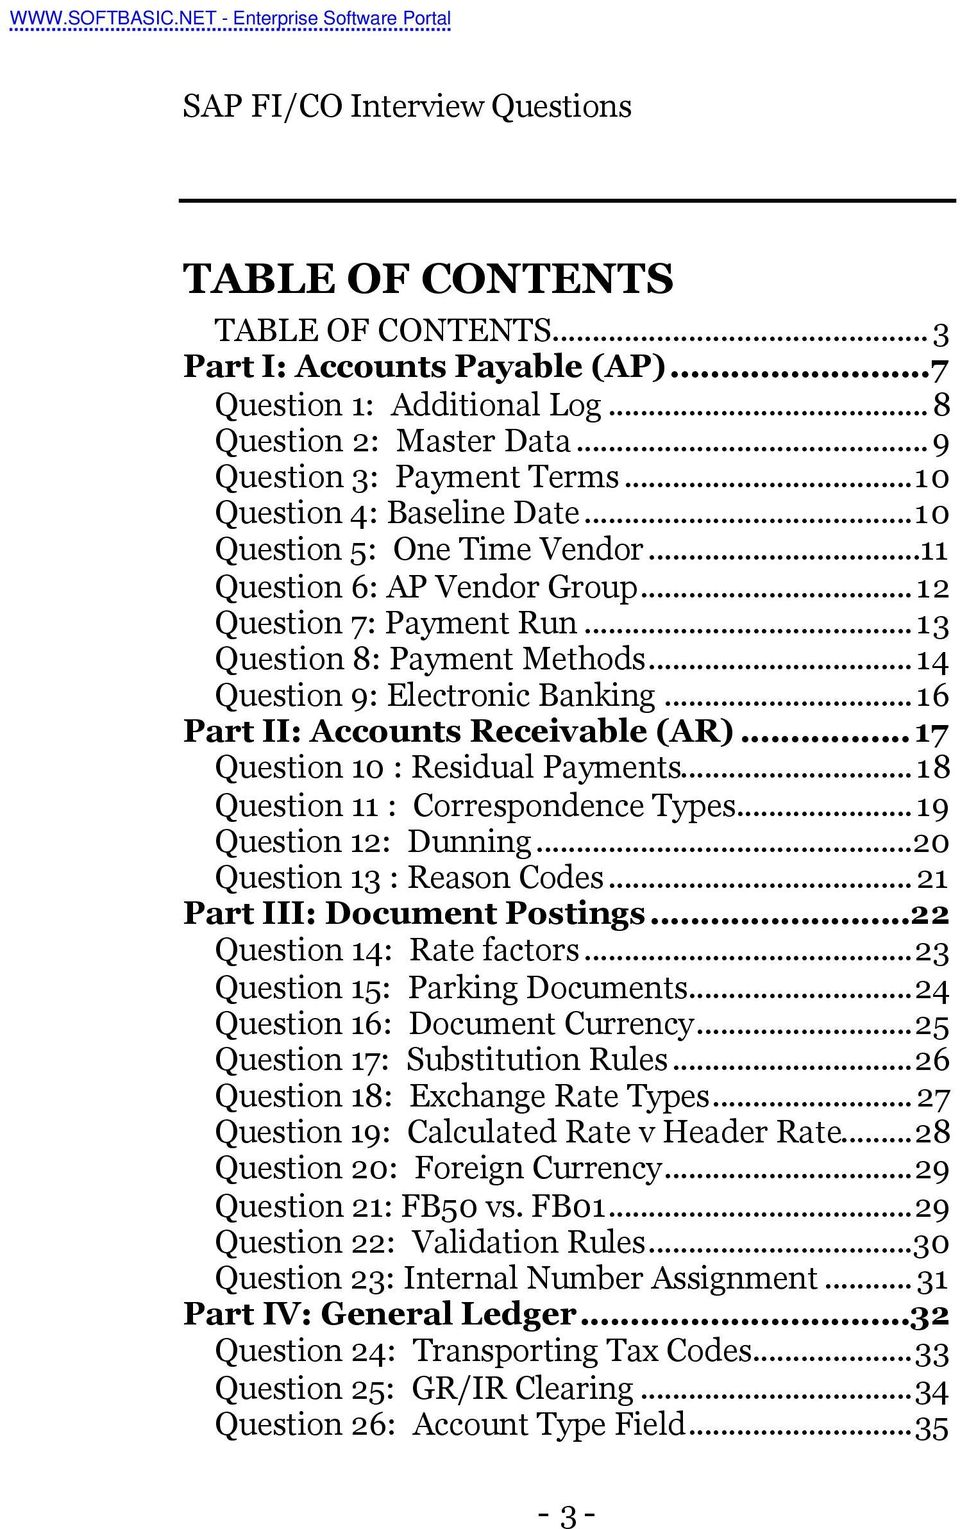 ..16 Part II: Accounts Receivable (AR)...17 Question 10 : Residual Payments...18 Question 11 : Correspondence Types...19 Question 12: Dunning...20 Question 13 : Reason Codes.